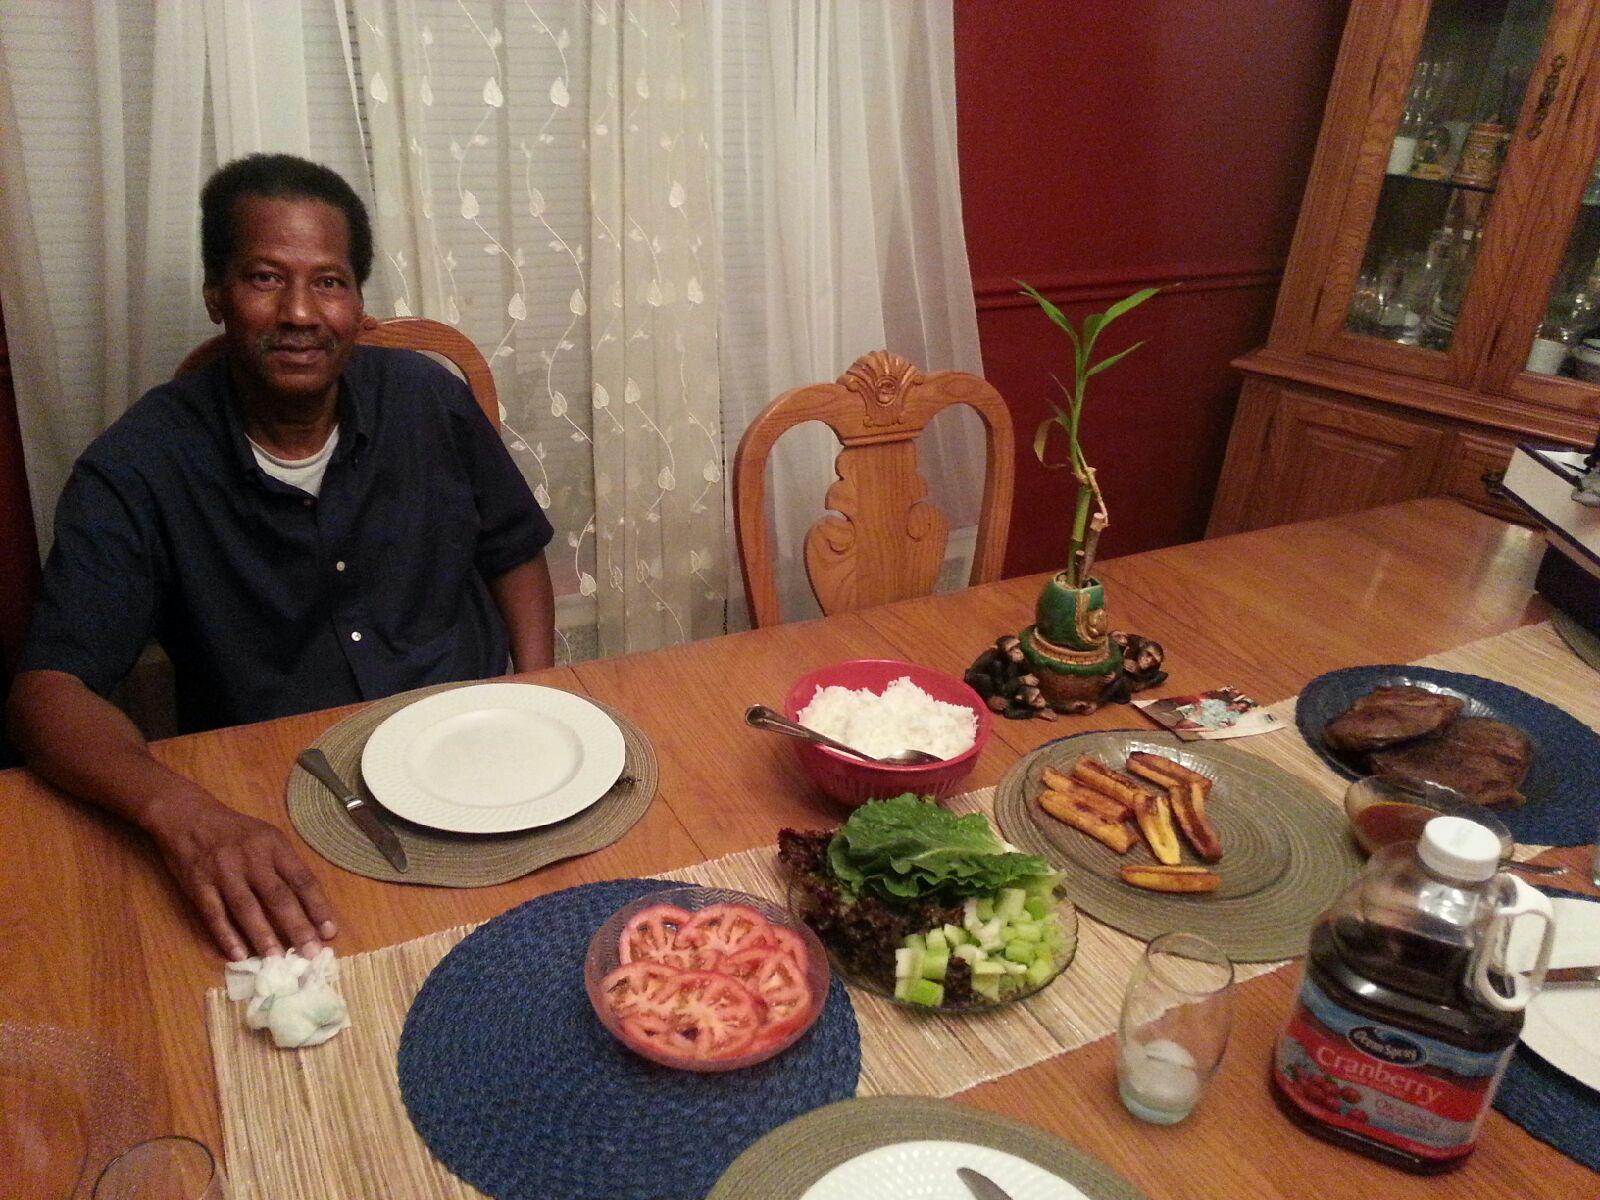 Audley Grocher with some of his culinary creations. (Kimberly Bonds)